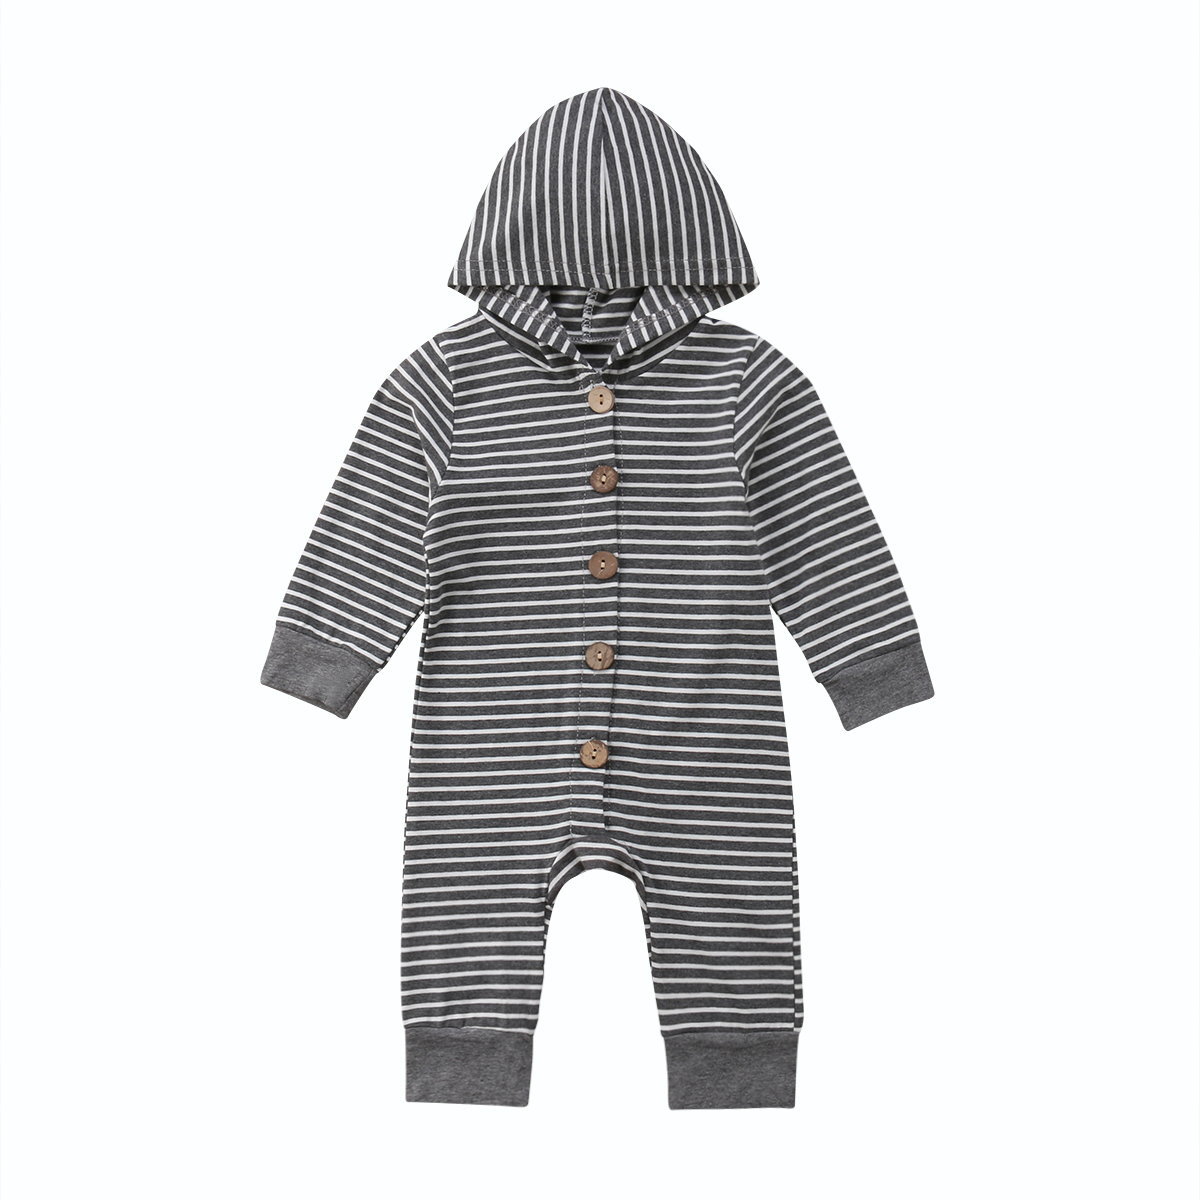 Toddler Fall Winter Baby   Rompers   Infant Boys Girls Stripe Hooded Jumpsuits Fashion Infant Botton Soft Outfits Baby Child Clothes